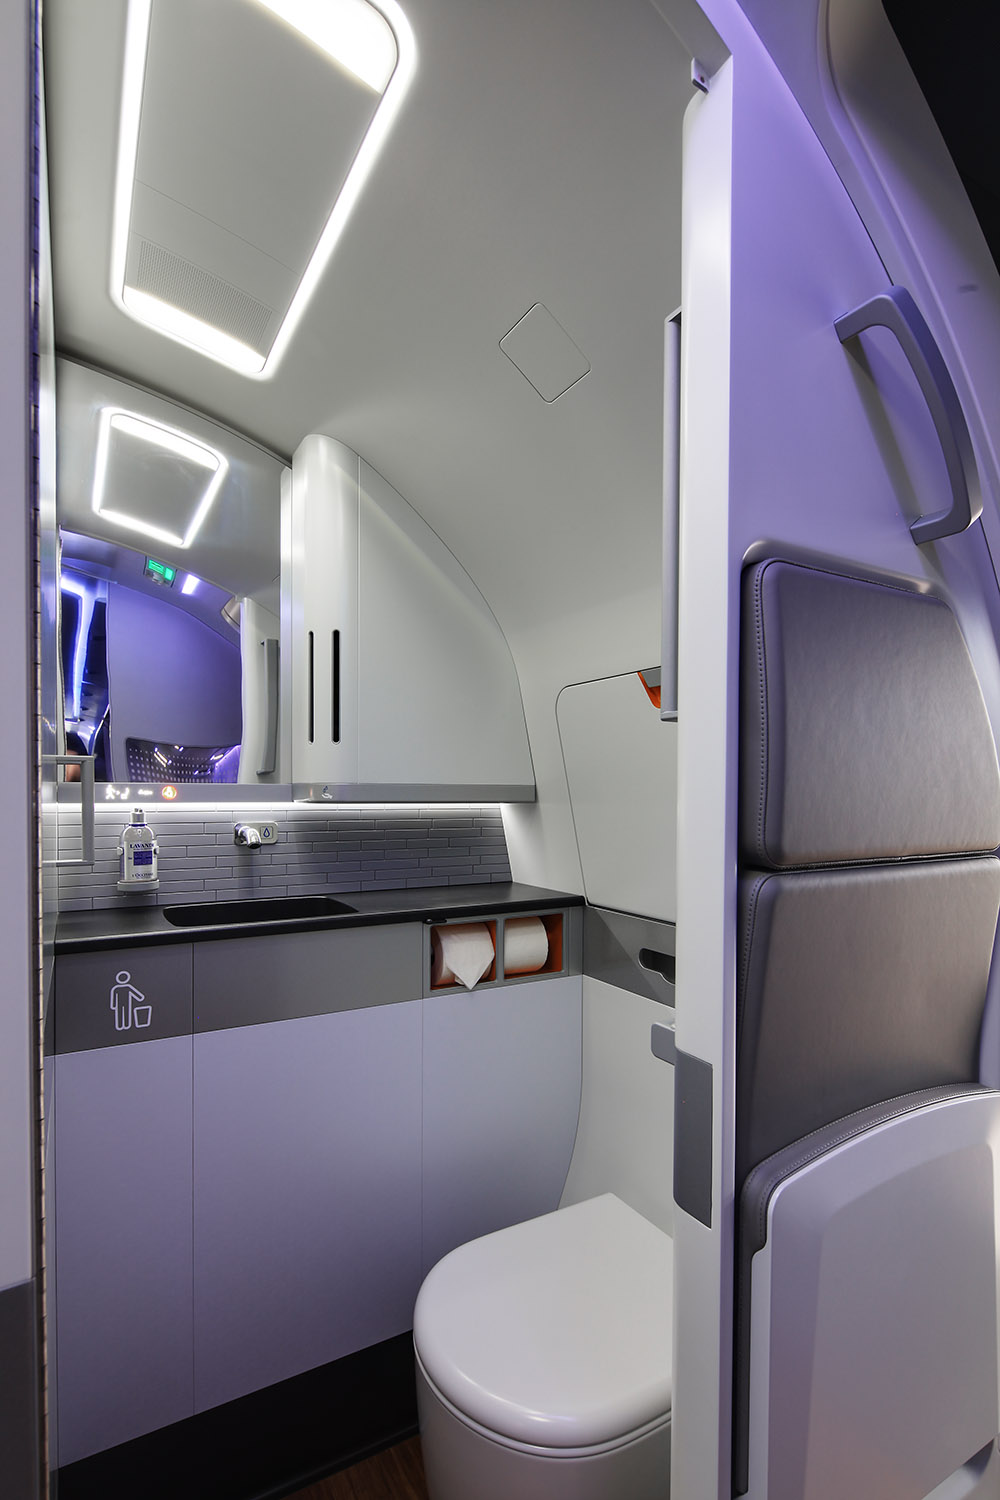 Inside E2 mock-up, Farnborough Airshow, UK